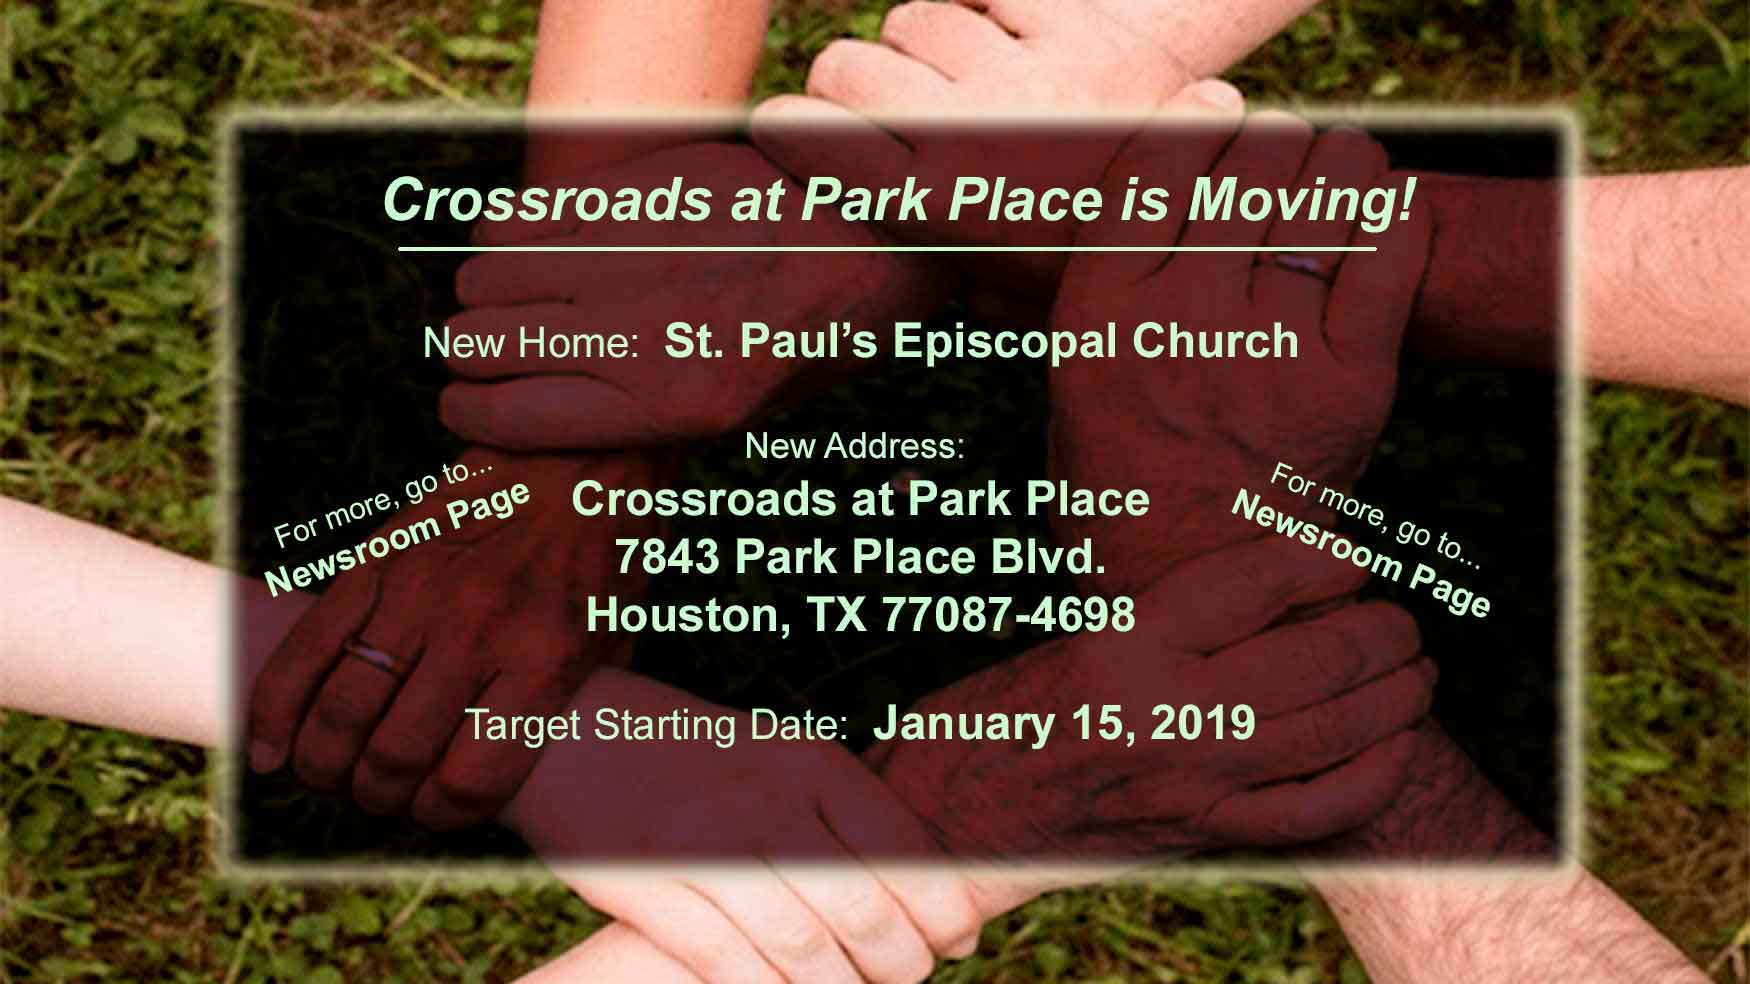 Crossroads at Park Place is Moving!